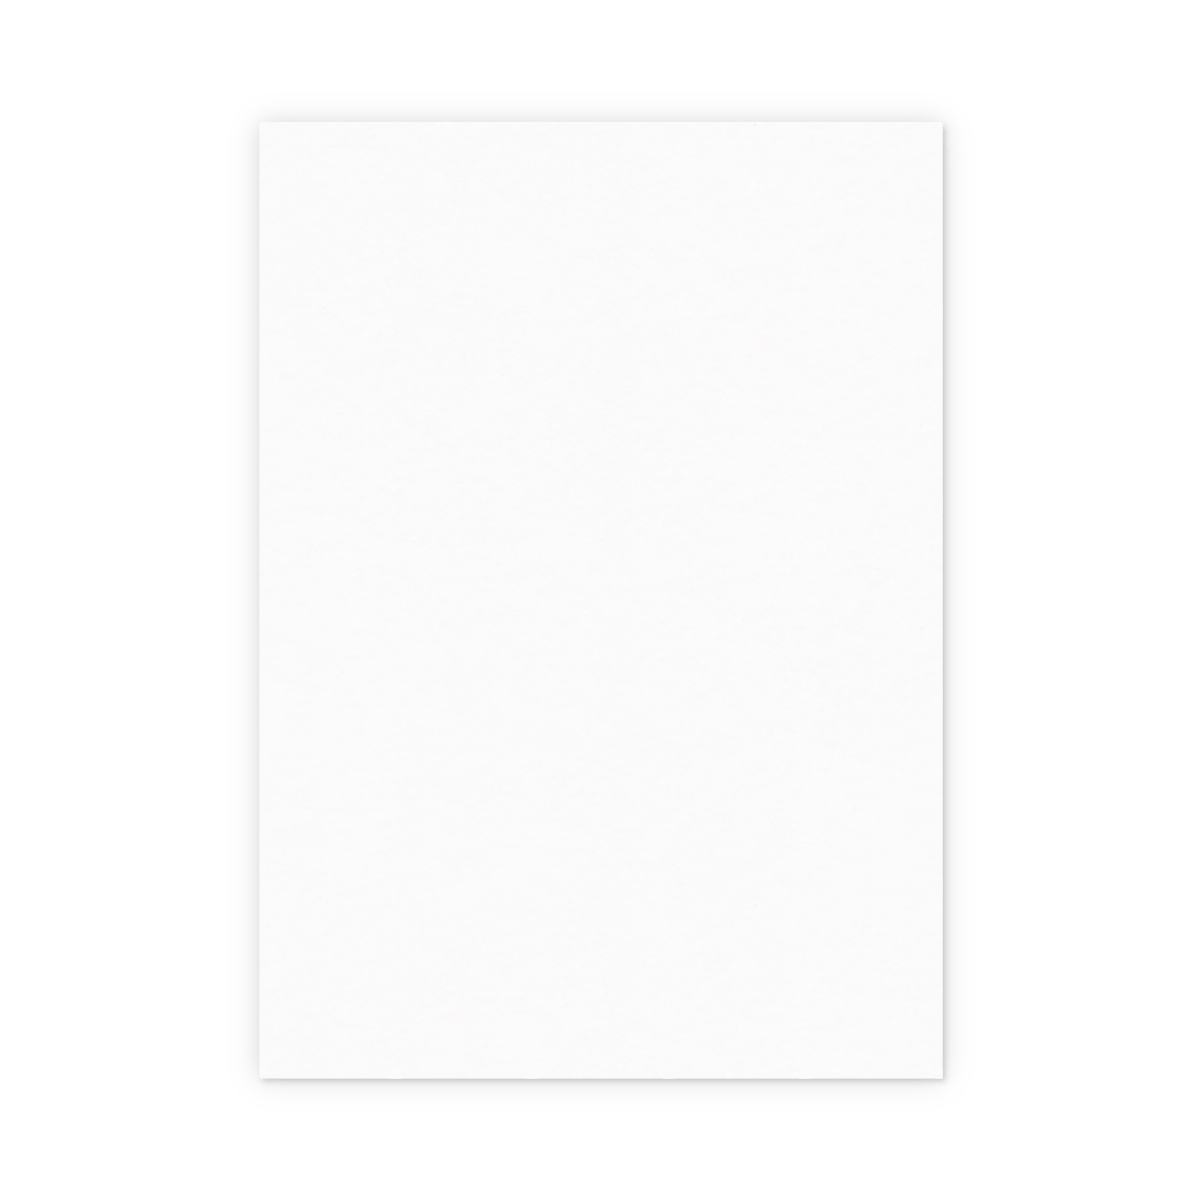 Https%3a%2f%2fwww.papier.com%2fproduct image%2f69311%2f4%2fclassic ampersand 16371 rueckseite 1552910130.png?ixlib=rb 1.1